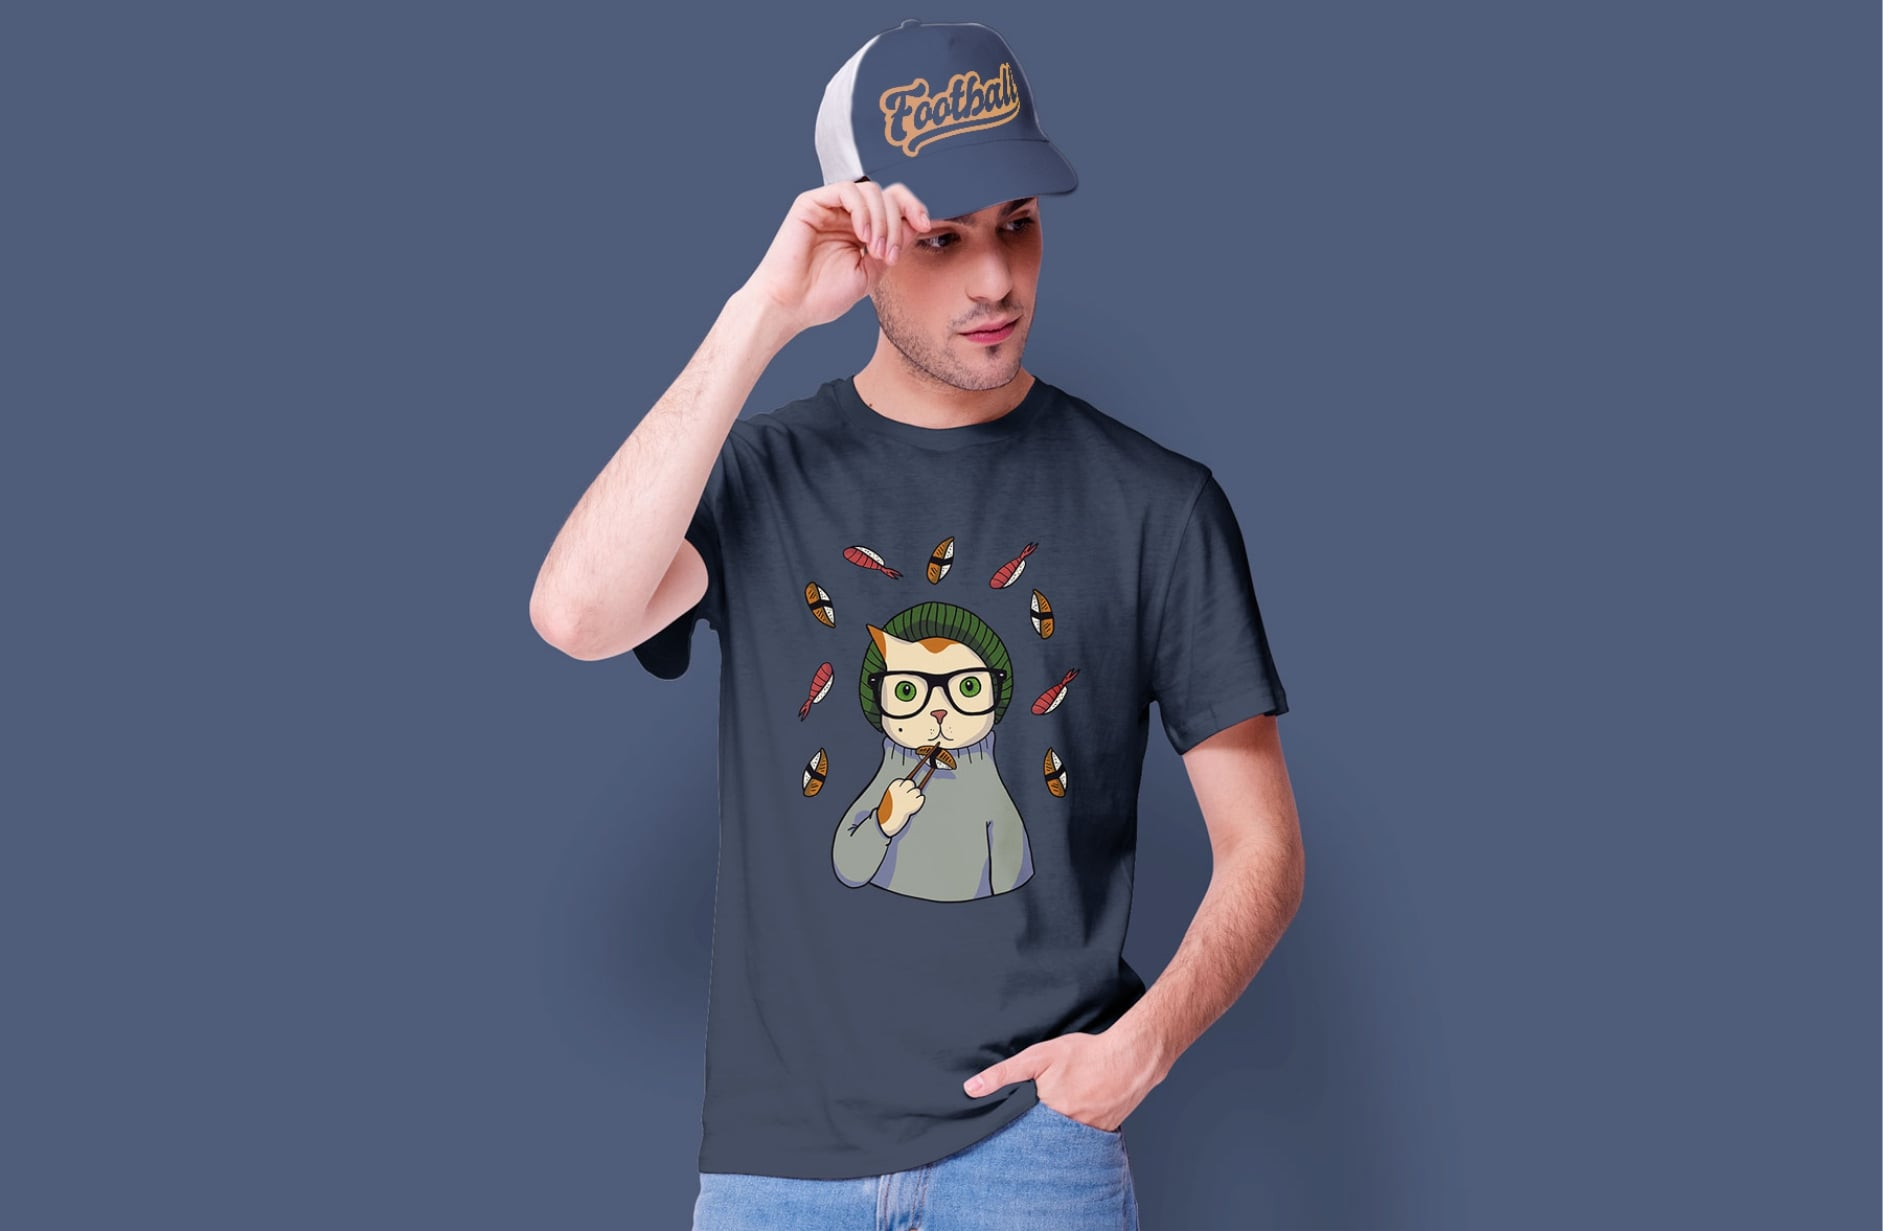 Mockup of a man with a t-shirt and cap design